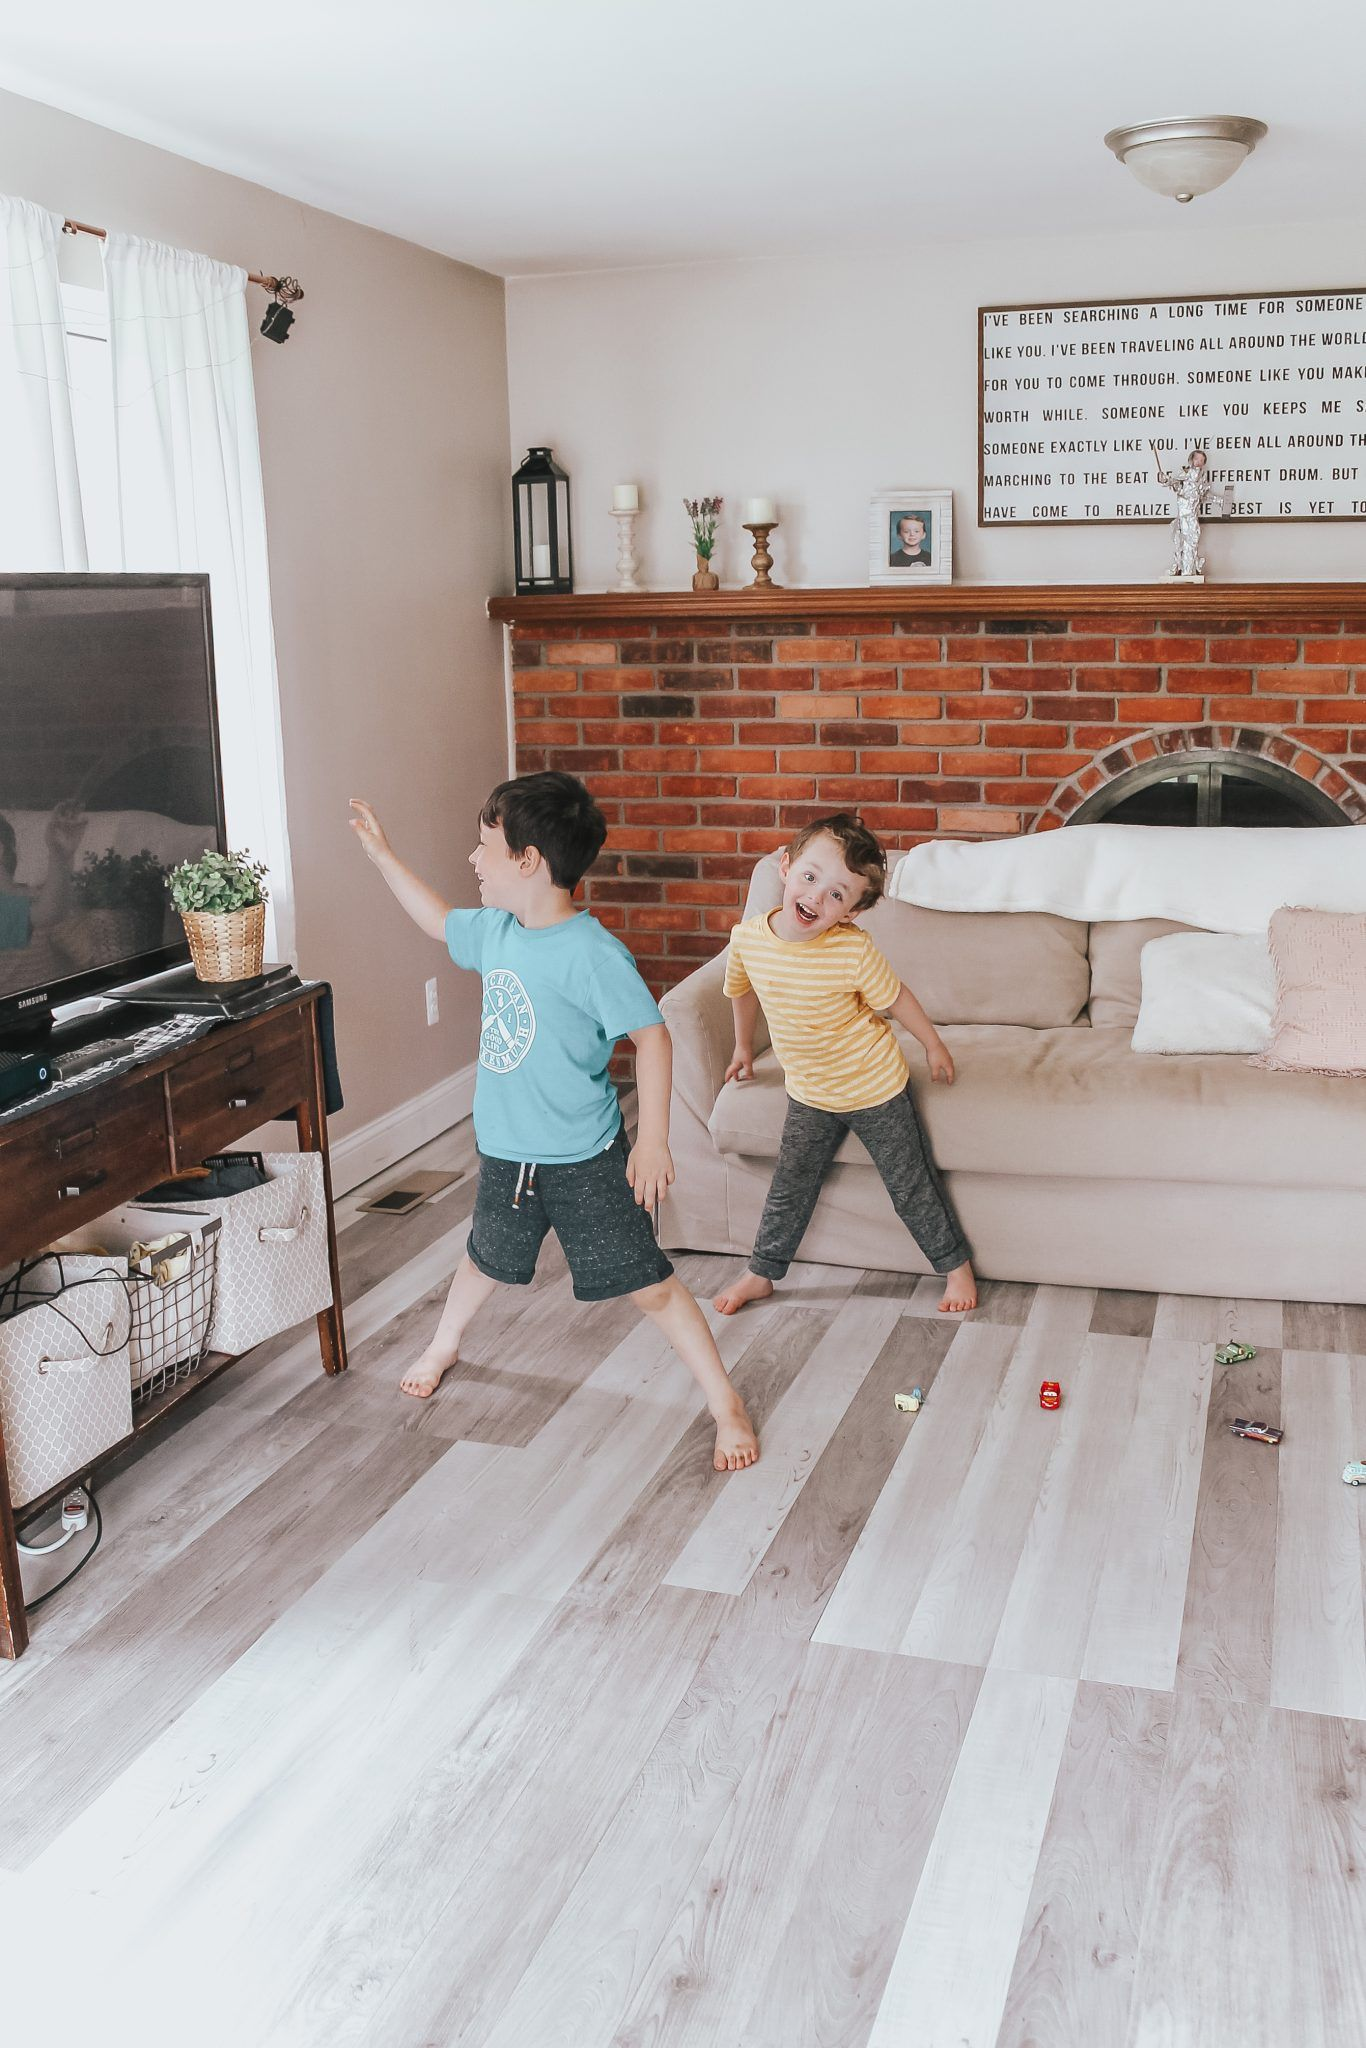 Living Room Makeover Diy Flooring  #Tarketthome #Ad #Tarkettflooring #Diy